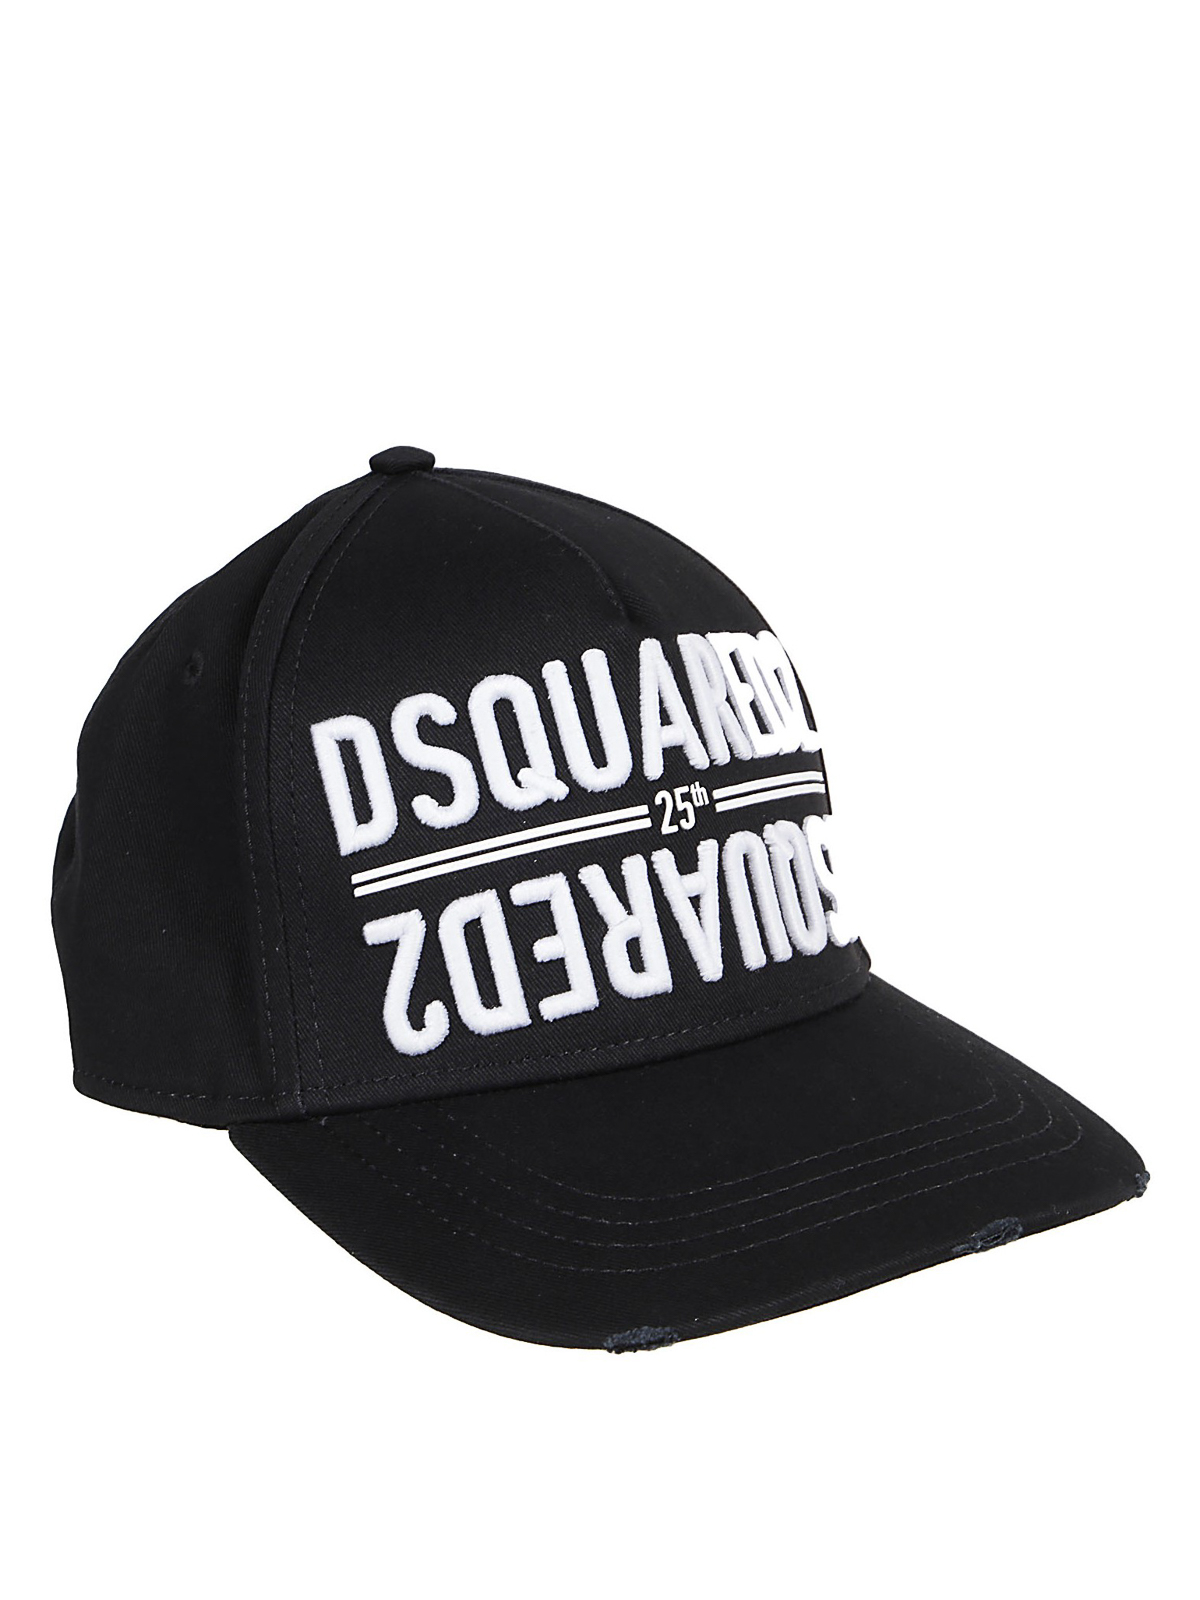 Dsquared2 LOGO EMBROIDERY COTTON GABARDINE CAP